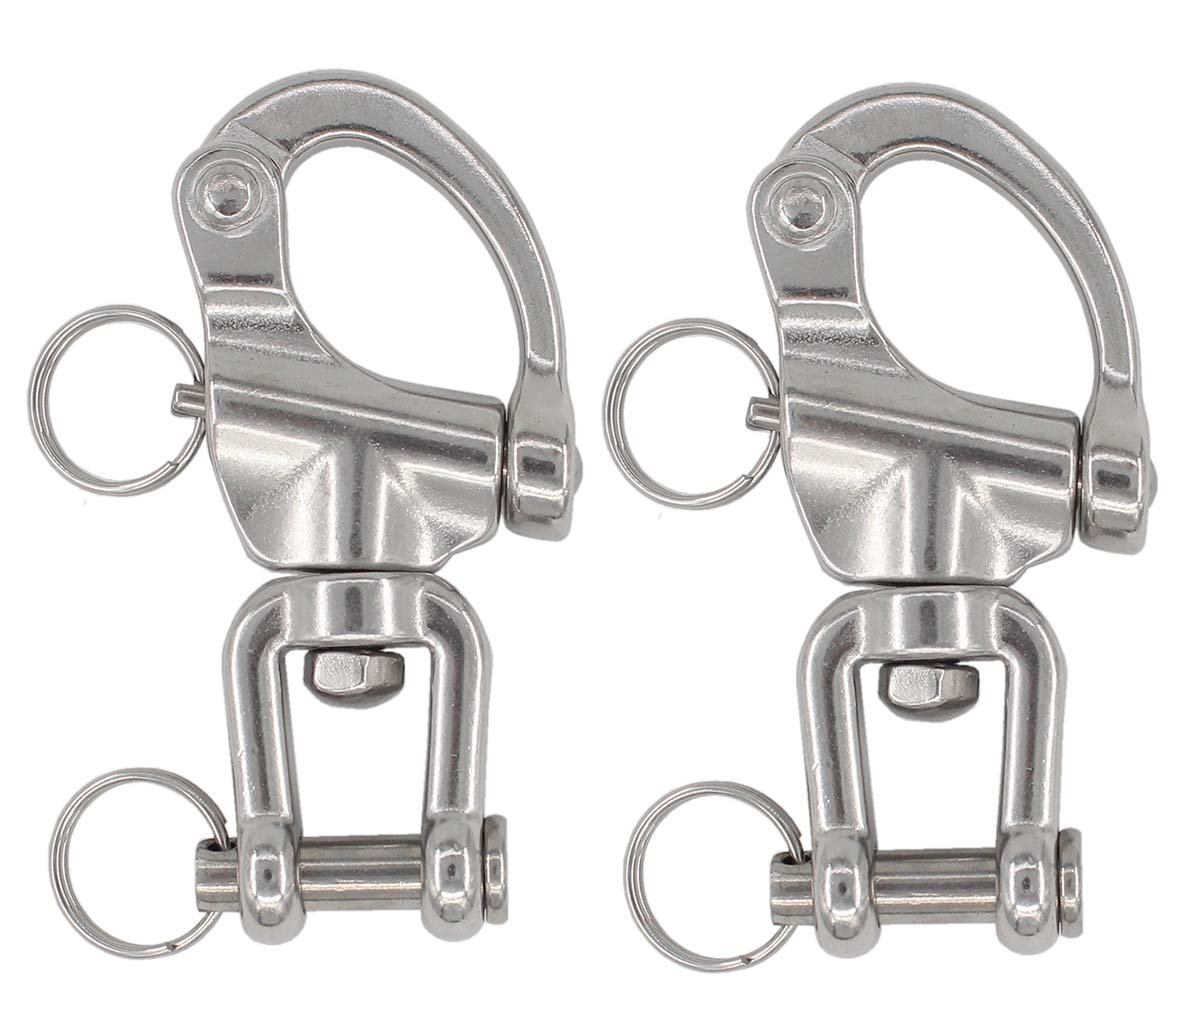 MOTOKU 2PCS 2PCS 2-3/4'' Jaw Swivel Snap Shackle 316 Stainless Steel for Sailboat Halyard